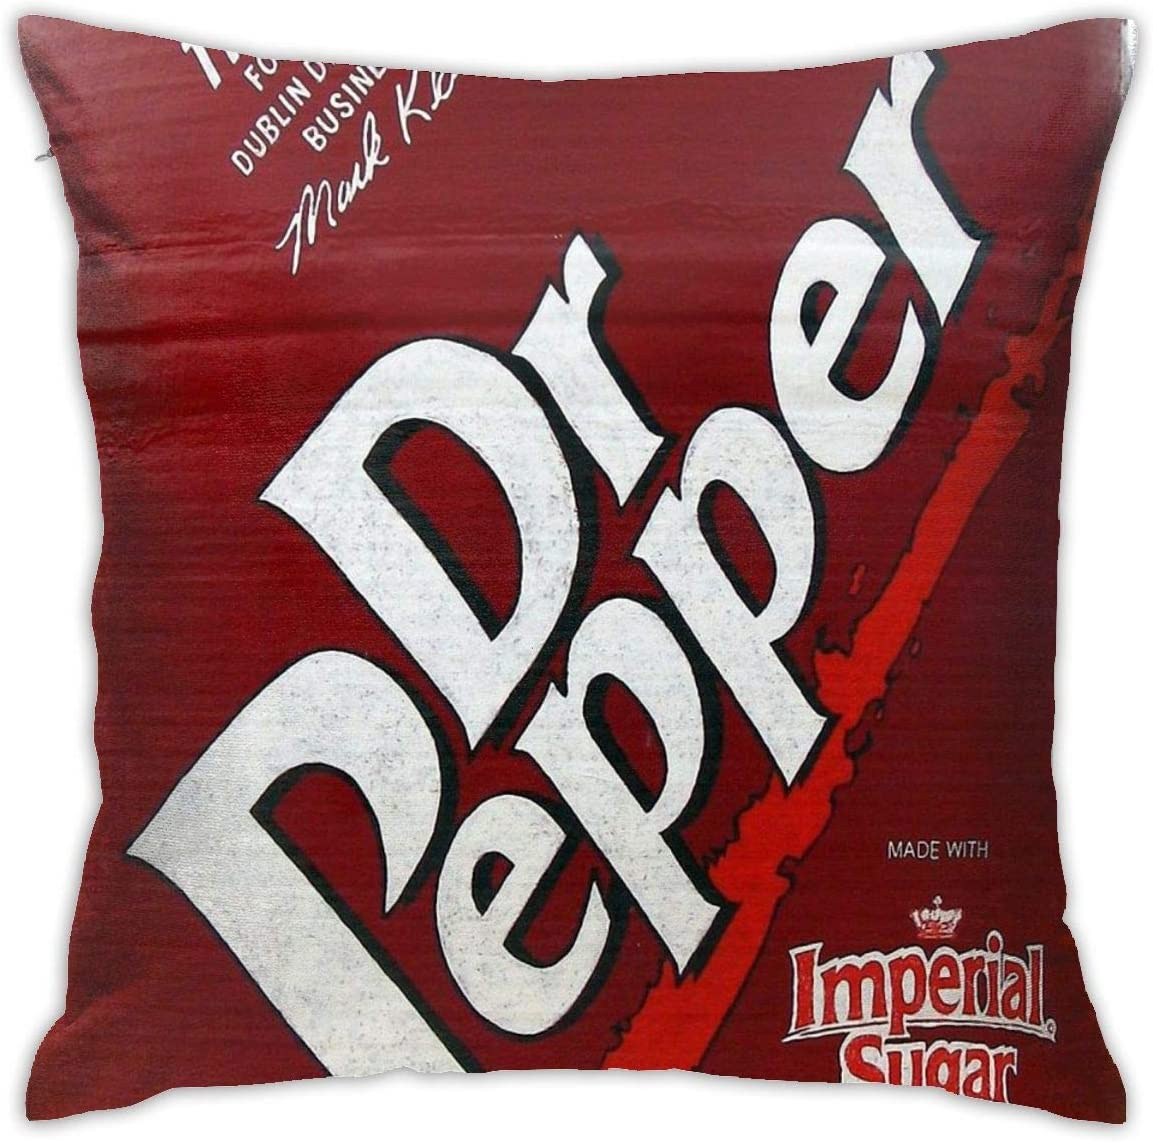 ZHUHOO Now This is Alot of Dr Pepper Bedroom Couch Sofa Square Pillow Case Home Decorative Throw Pillow Covers 18x18 Inch